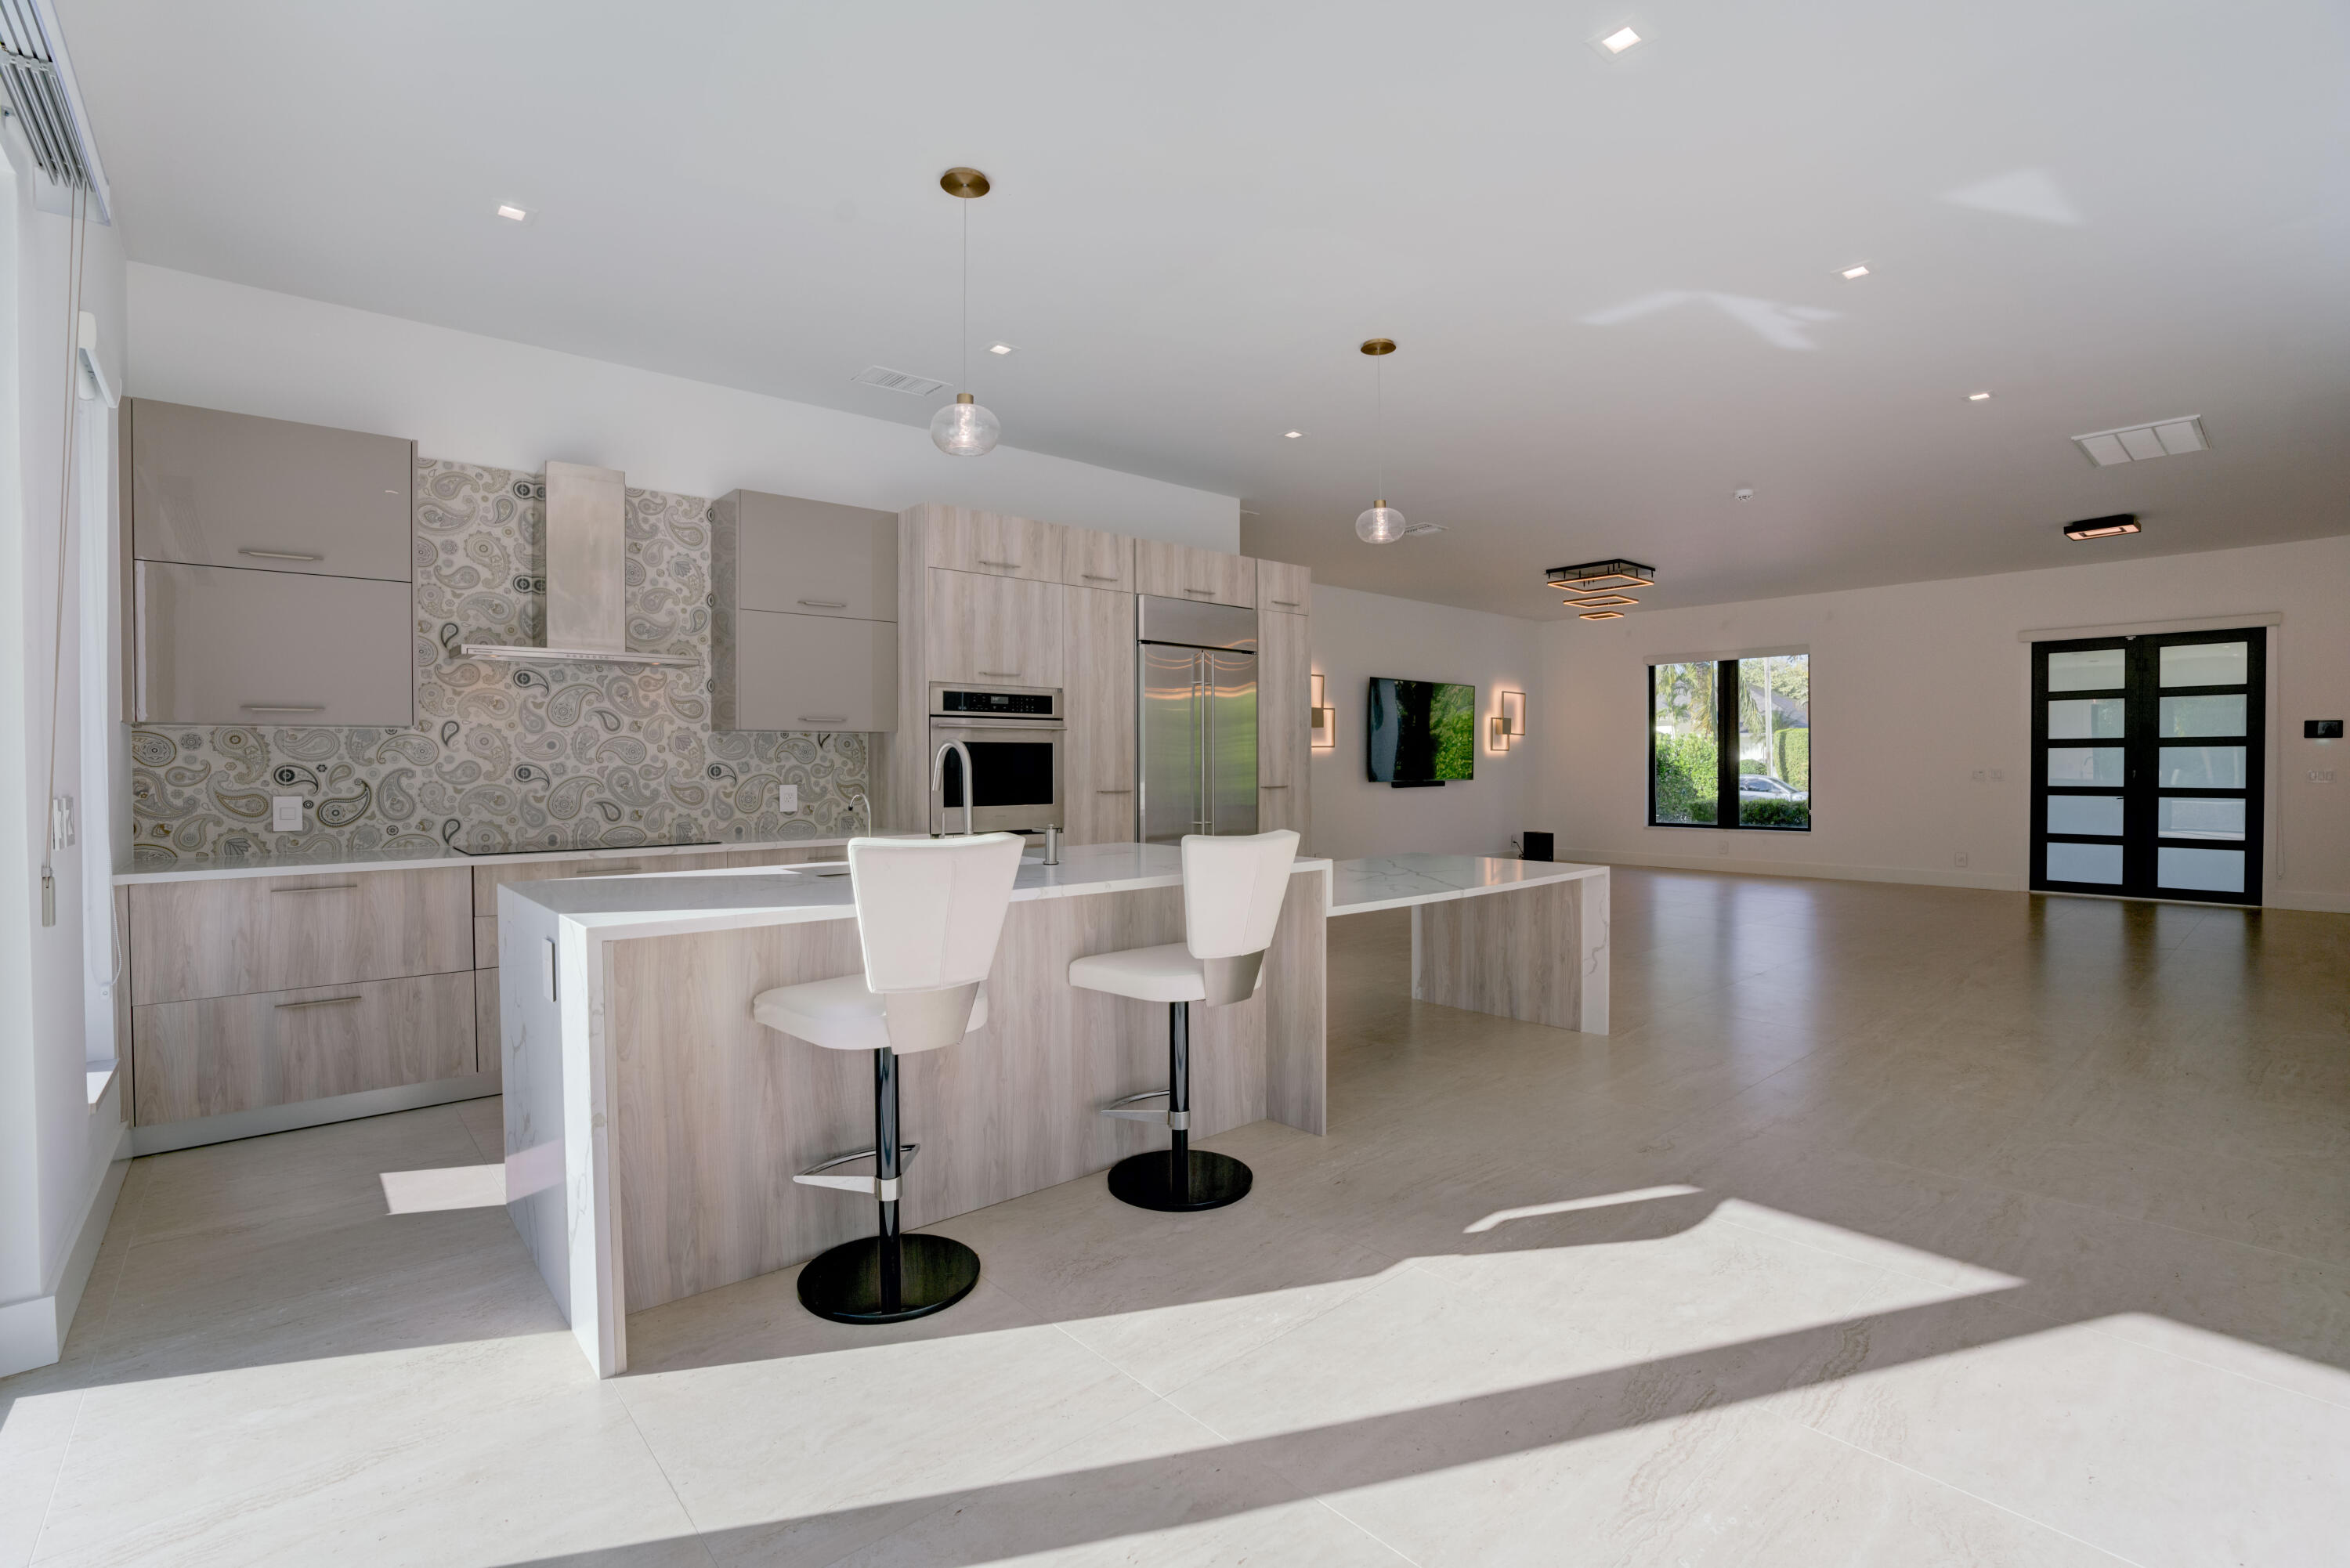 Rare Modern home available for lease annual unfurnished. Completely gutted and redesigned into a Modern and spacious 4 bedroom. 10-12 Ft. Ceilings throughout Monogram kitchen appliances oversized Calcatta Gold Quartz kitchen island. 3 spa like full bathrooms with rain head showers. All impact windows and sliding doors. LED lighting integrated with smart home technology and HD camera security system. Extended driveway to accommodate multiple vehicles. Grade A+ Jupiter Schools. Best location close to Alton, PGA and Jupiter restaurants and shopping. Within walking/biking distance to Juno Beach. 50 Ft heated lap pool with modern waterfall and sun shelf. Lawn and Pool Care included in the rent.